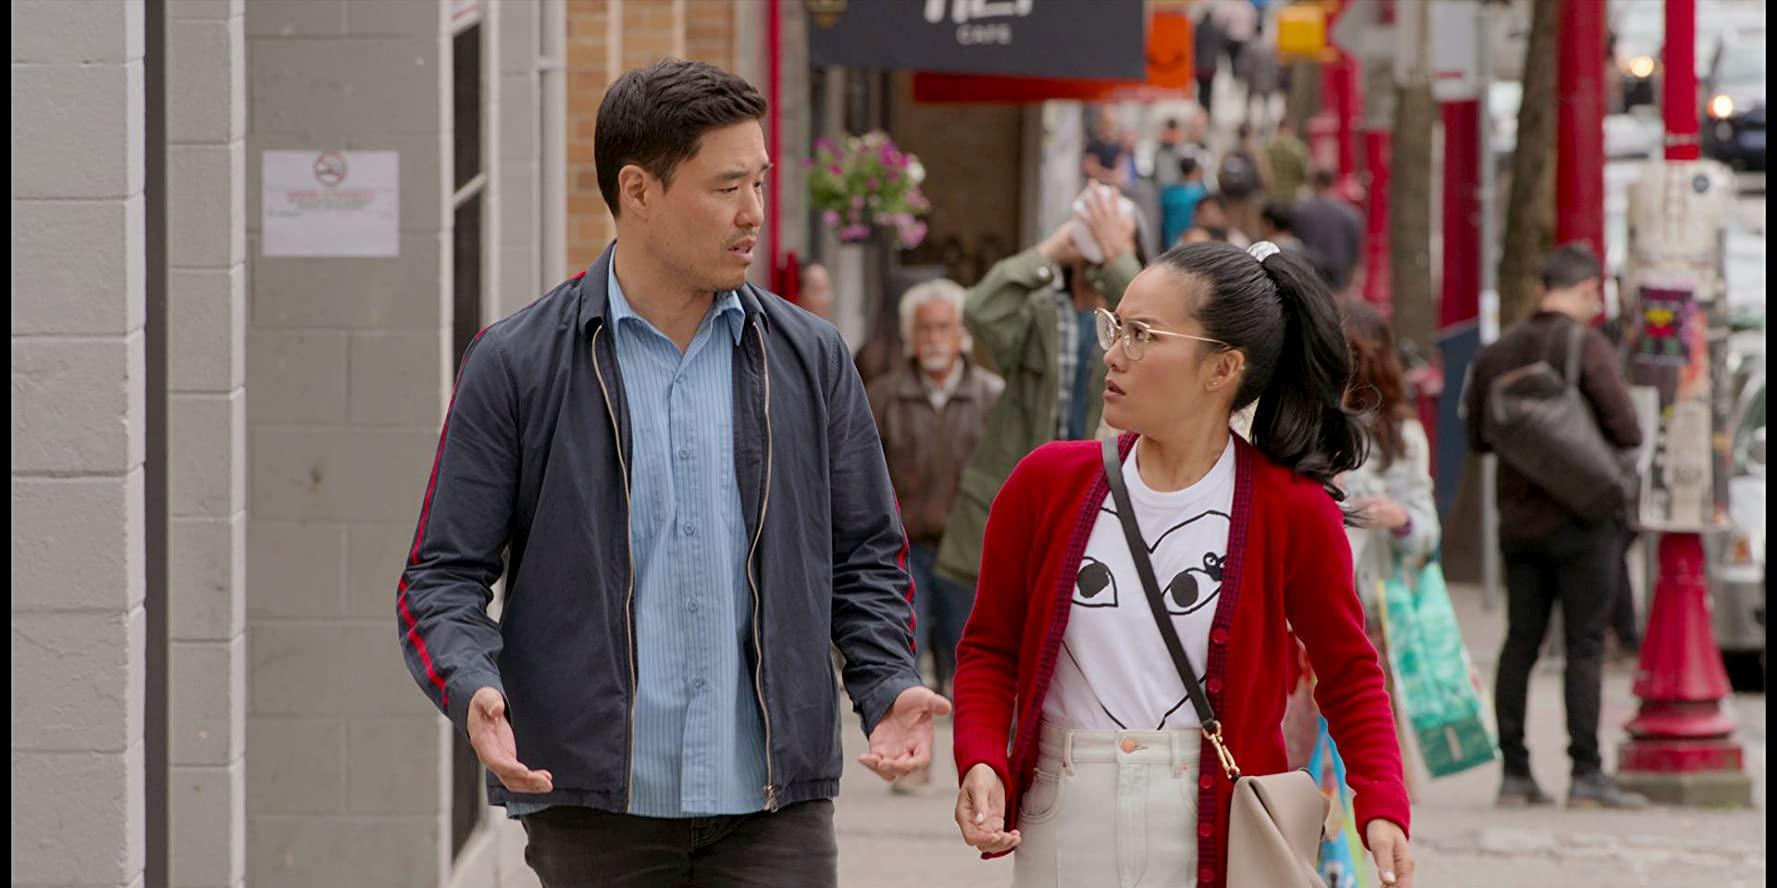 مشاهدة فيلم Always Be My Maybe (2019) مترجم HD اون لاين